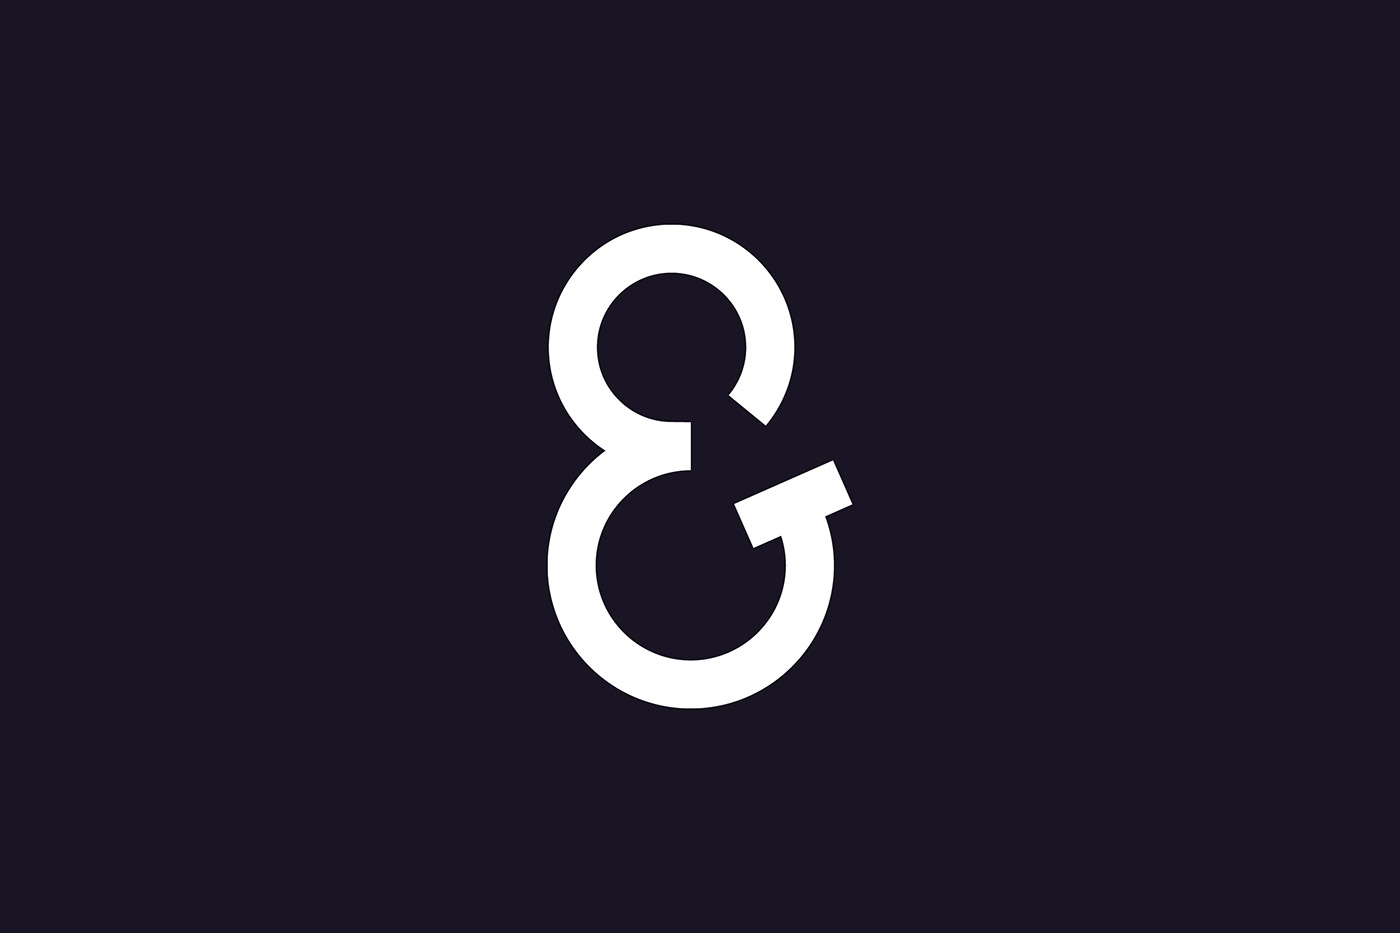 Hoad & More ampersand logo